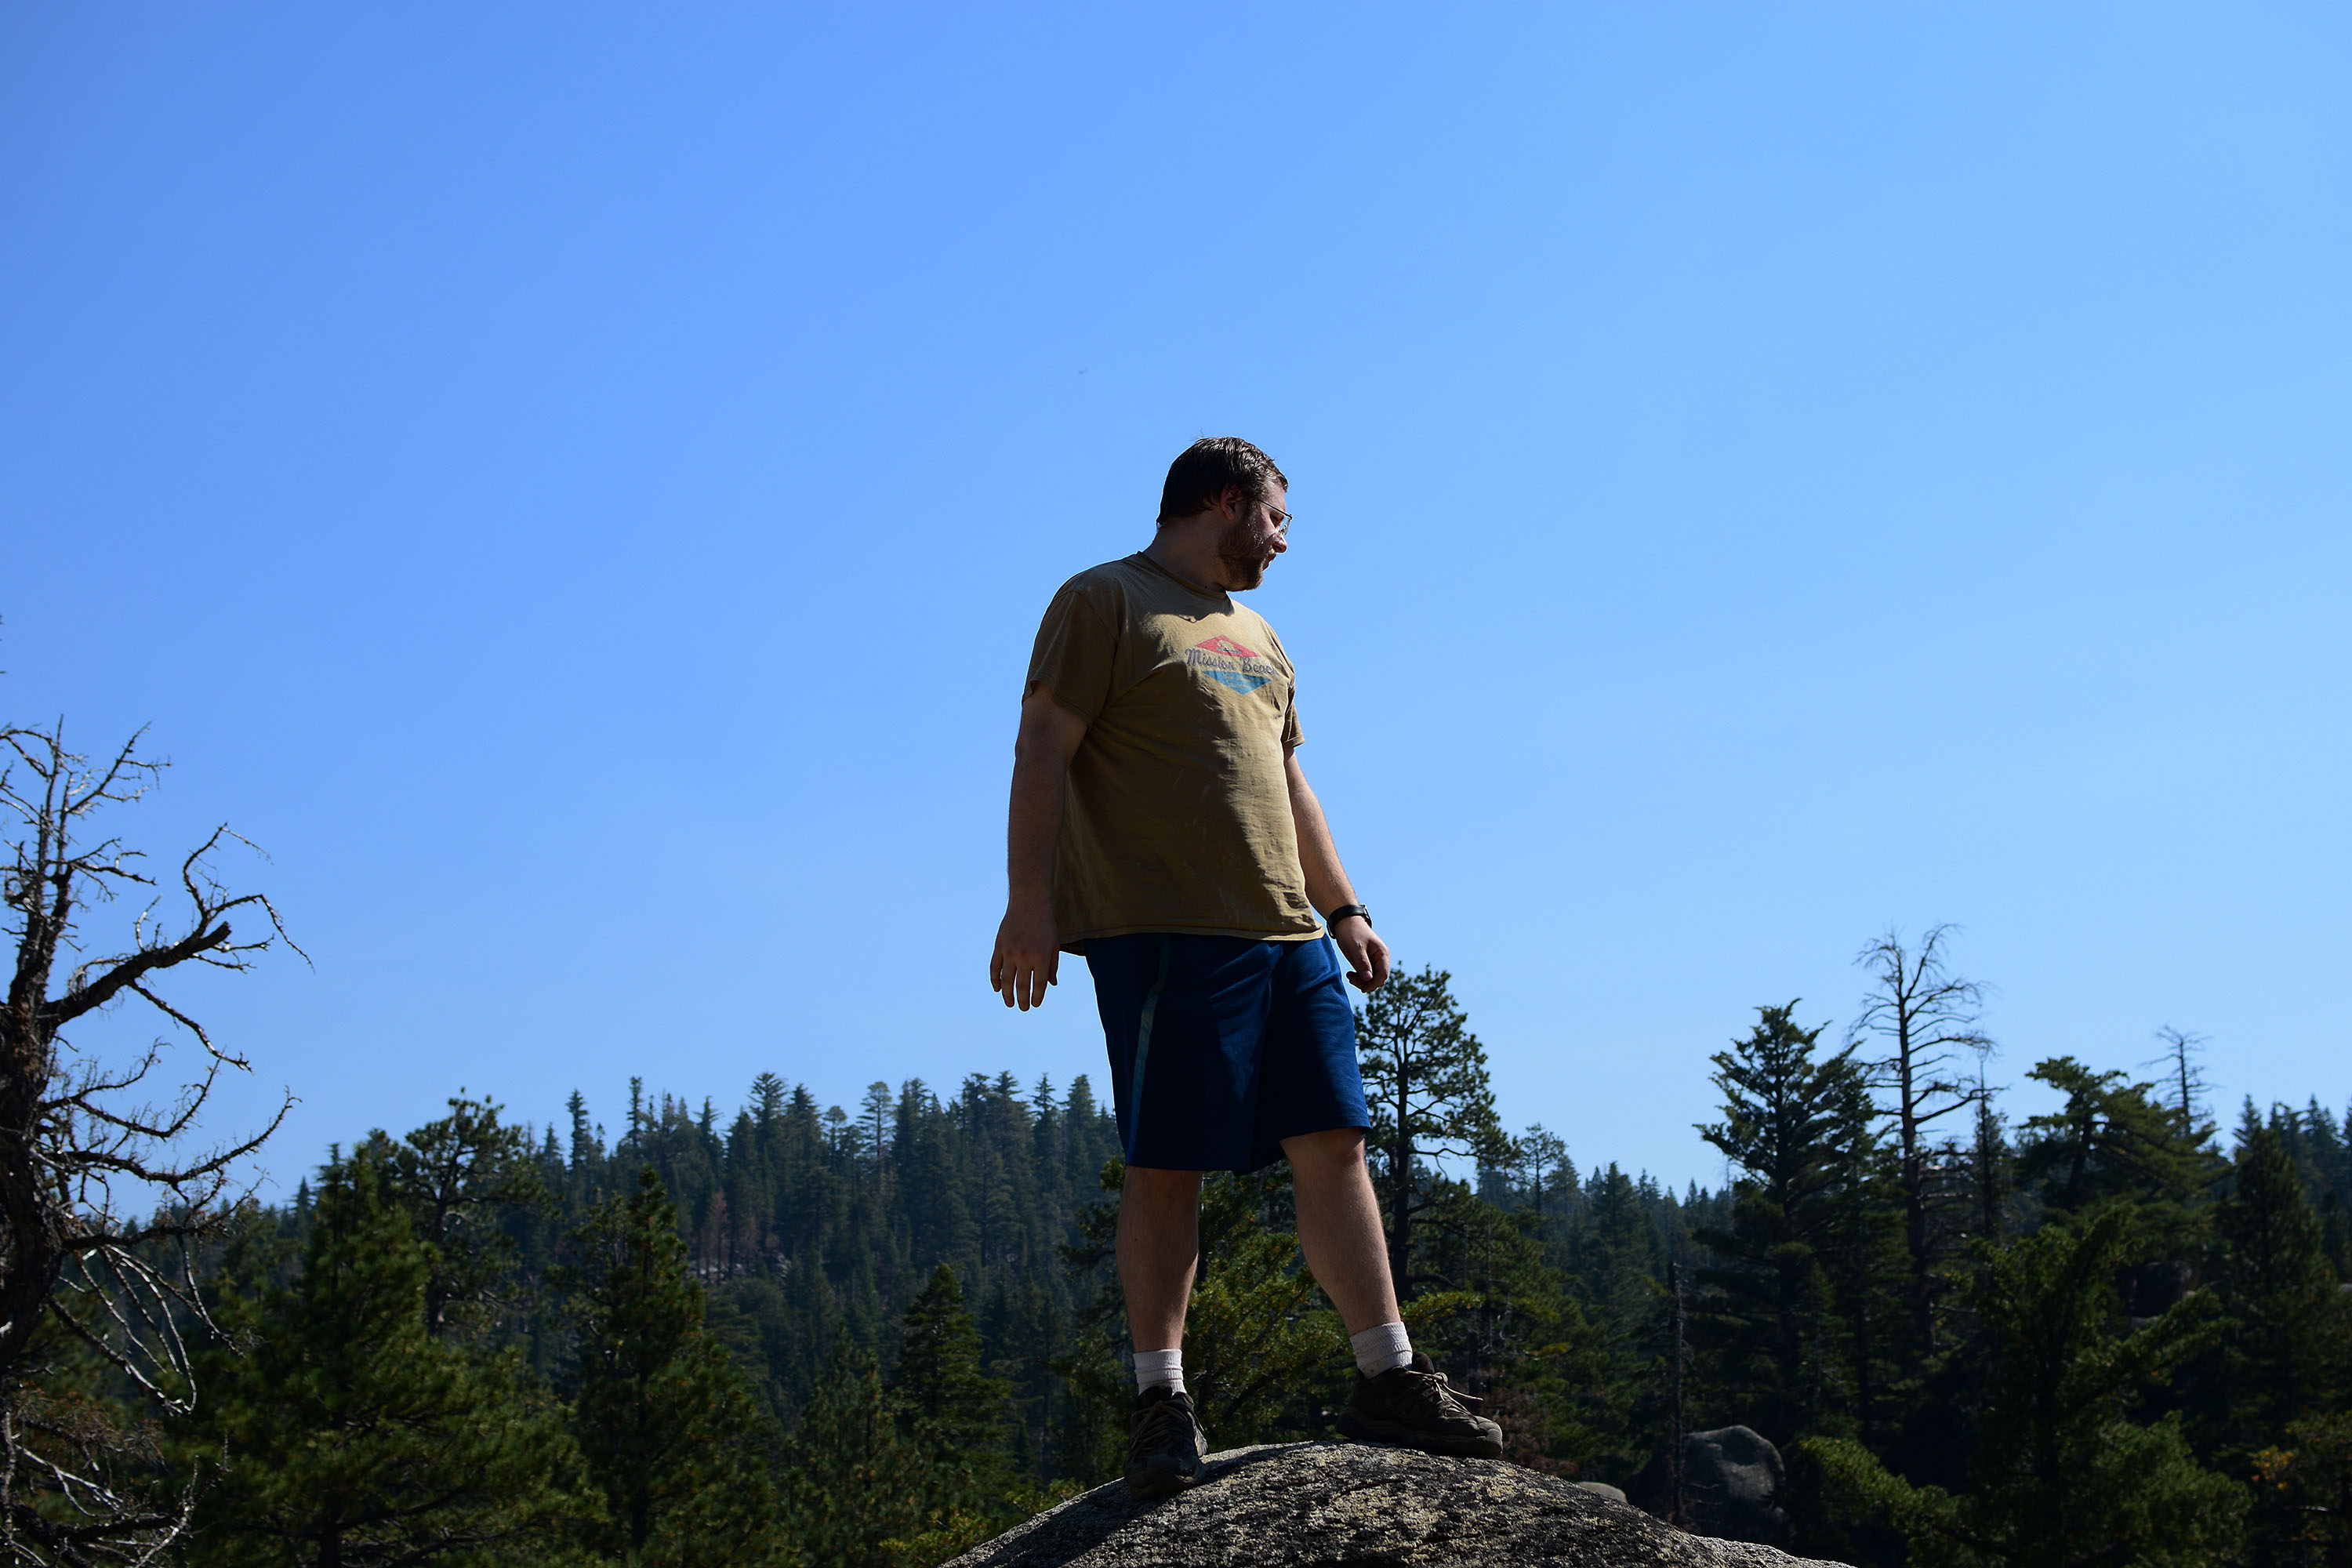 Me standing on a large boulder